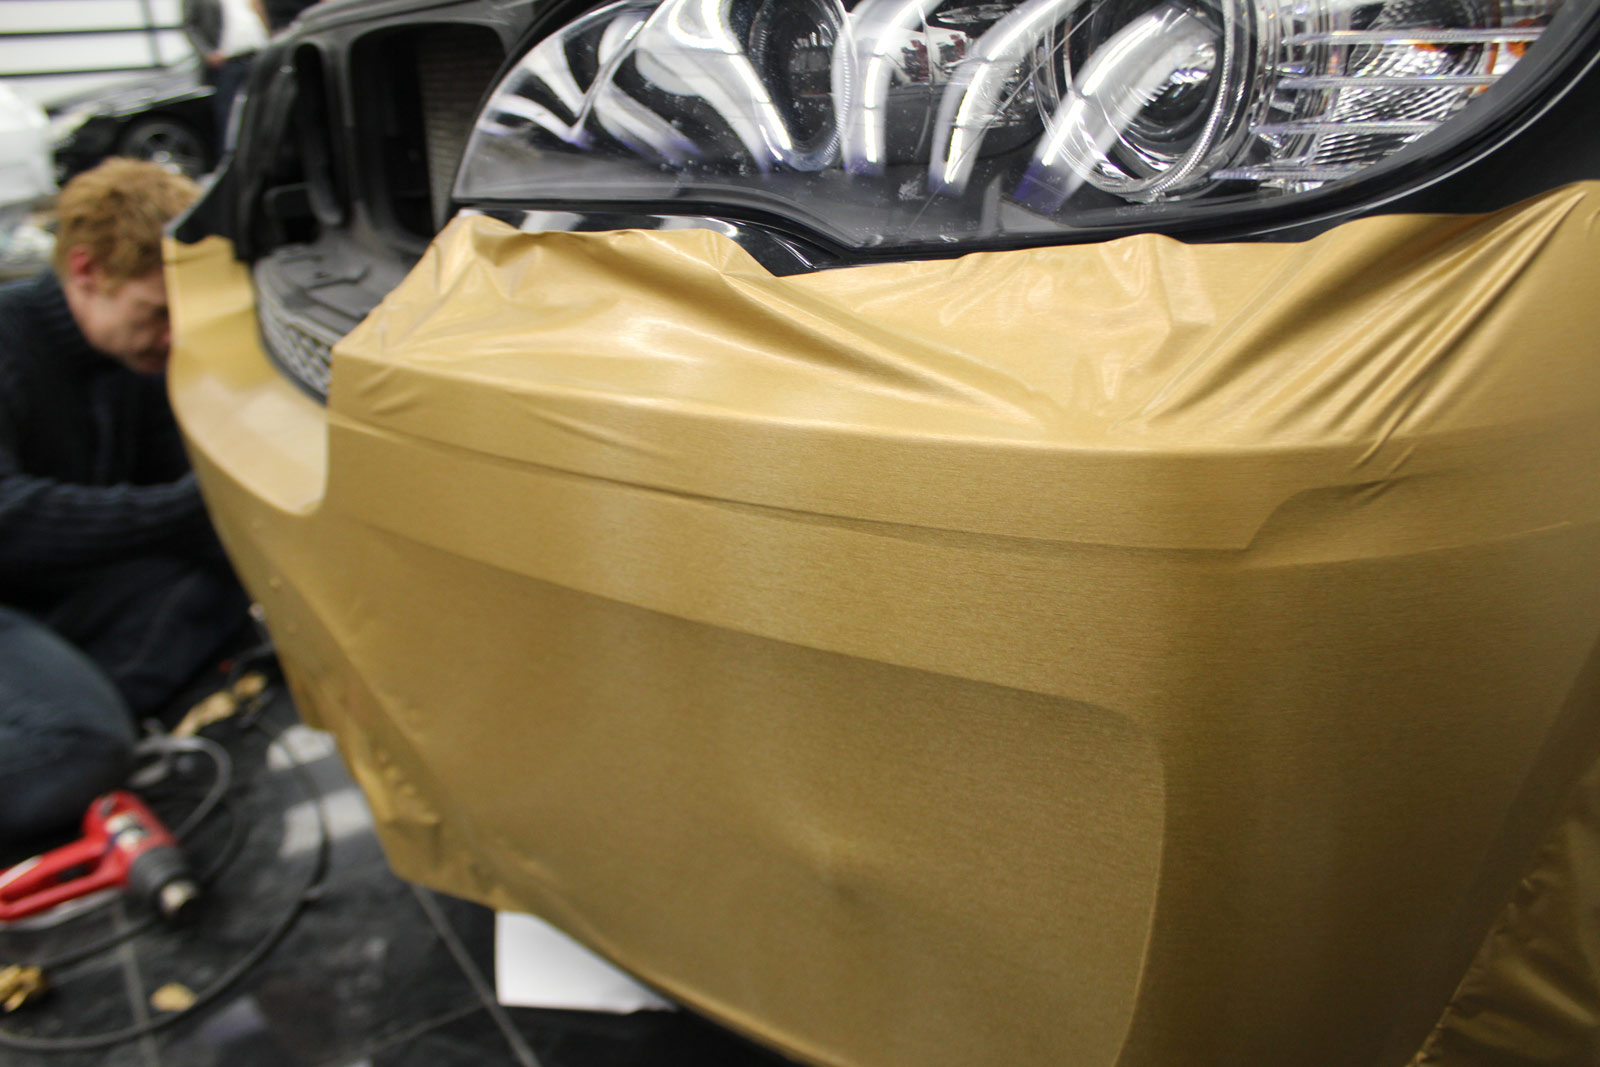 BMW_X6_VERKLEBUNG_BRUSHED_GOLD_13